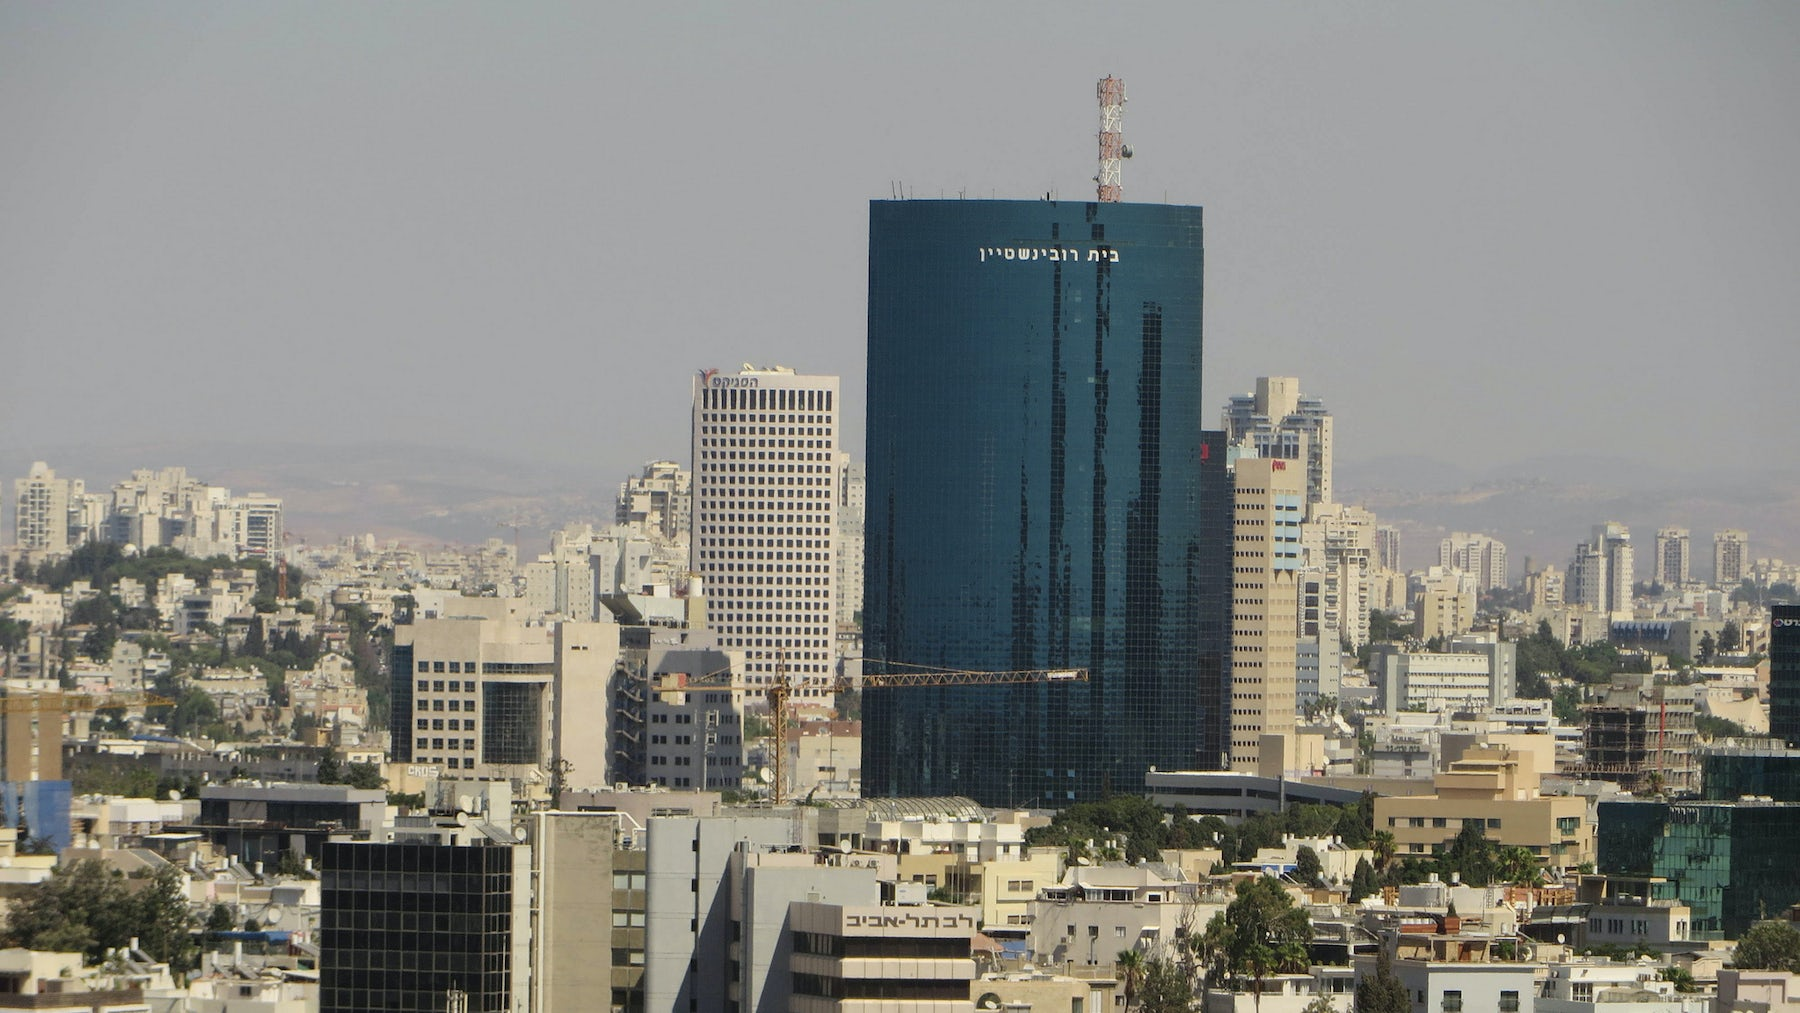 Tel Aviv | Source: Flickr/ChrisHoare